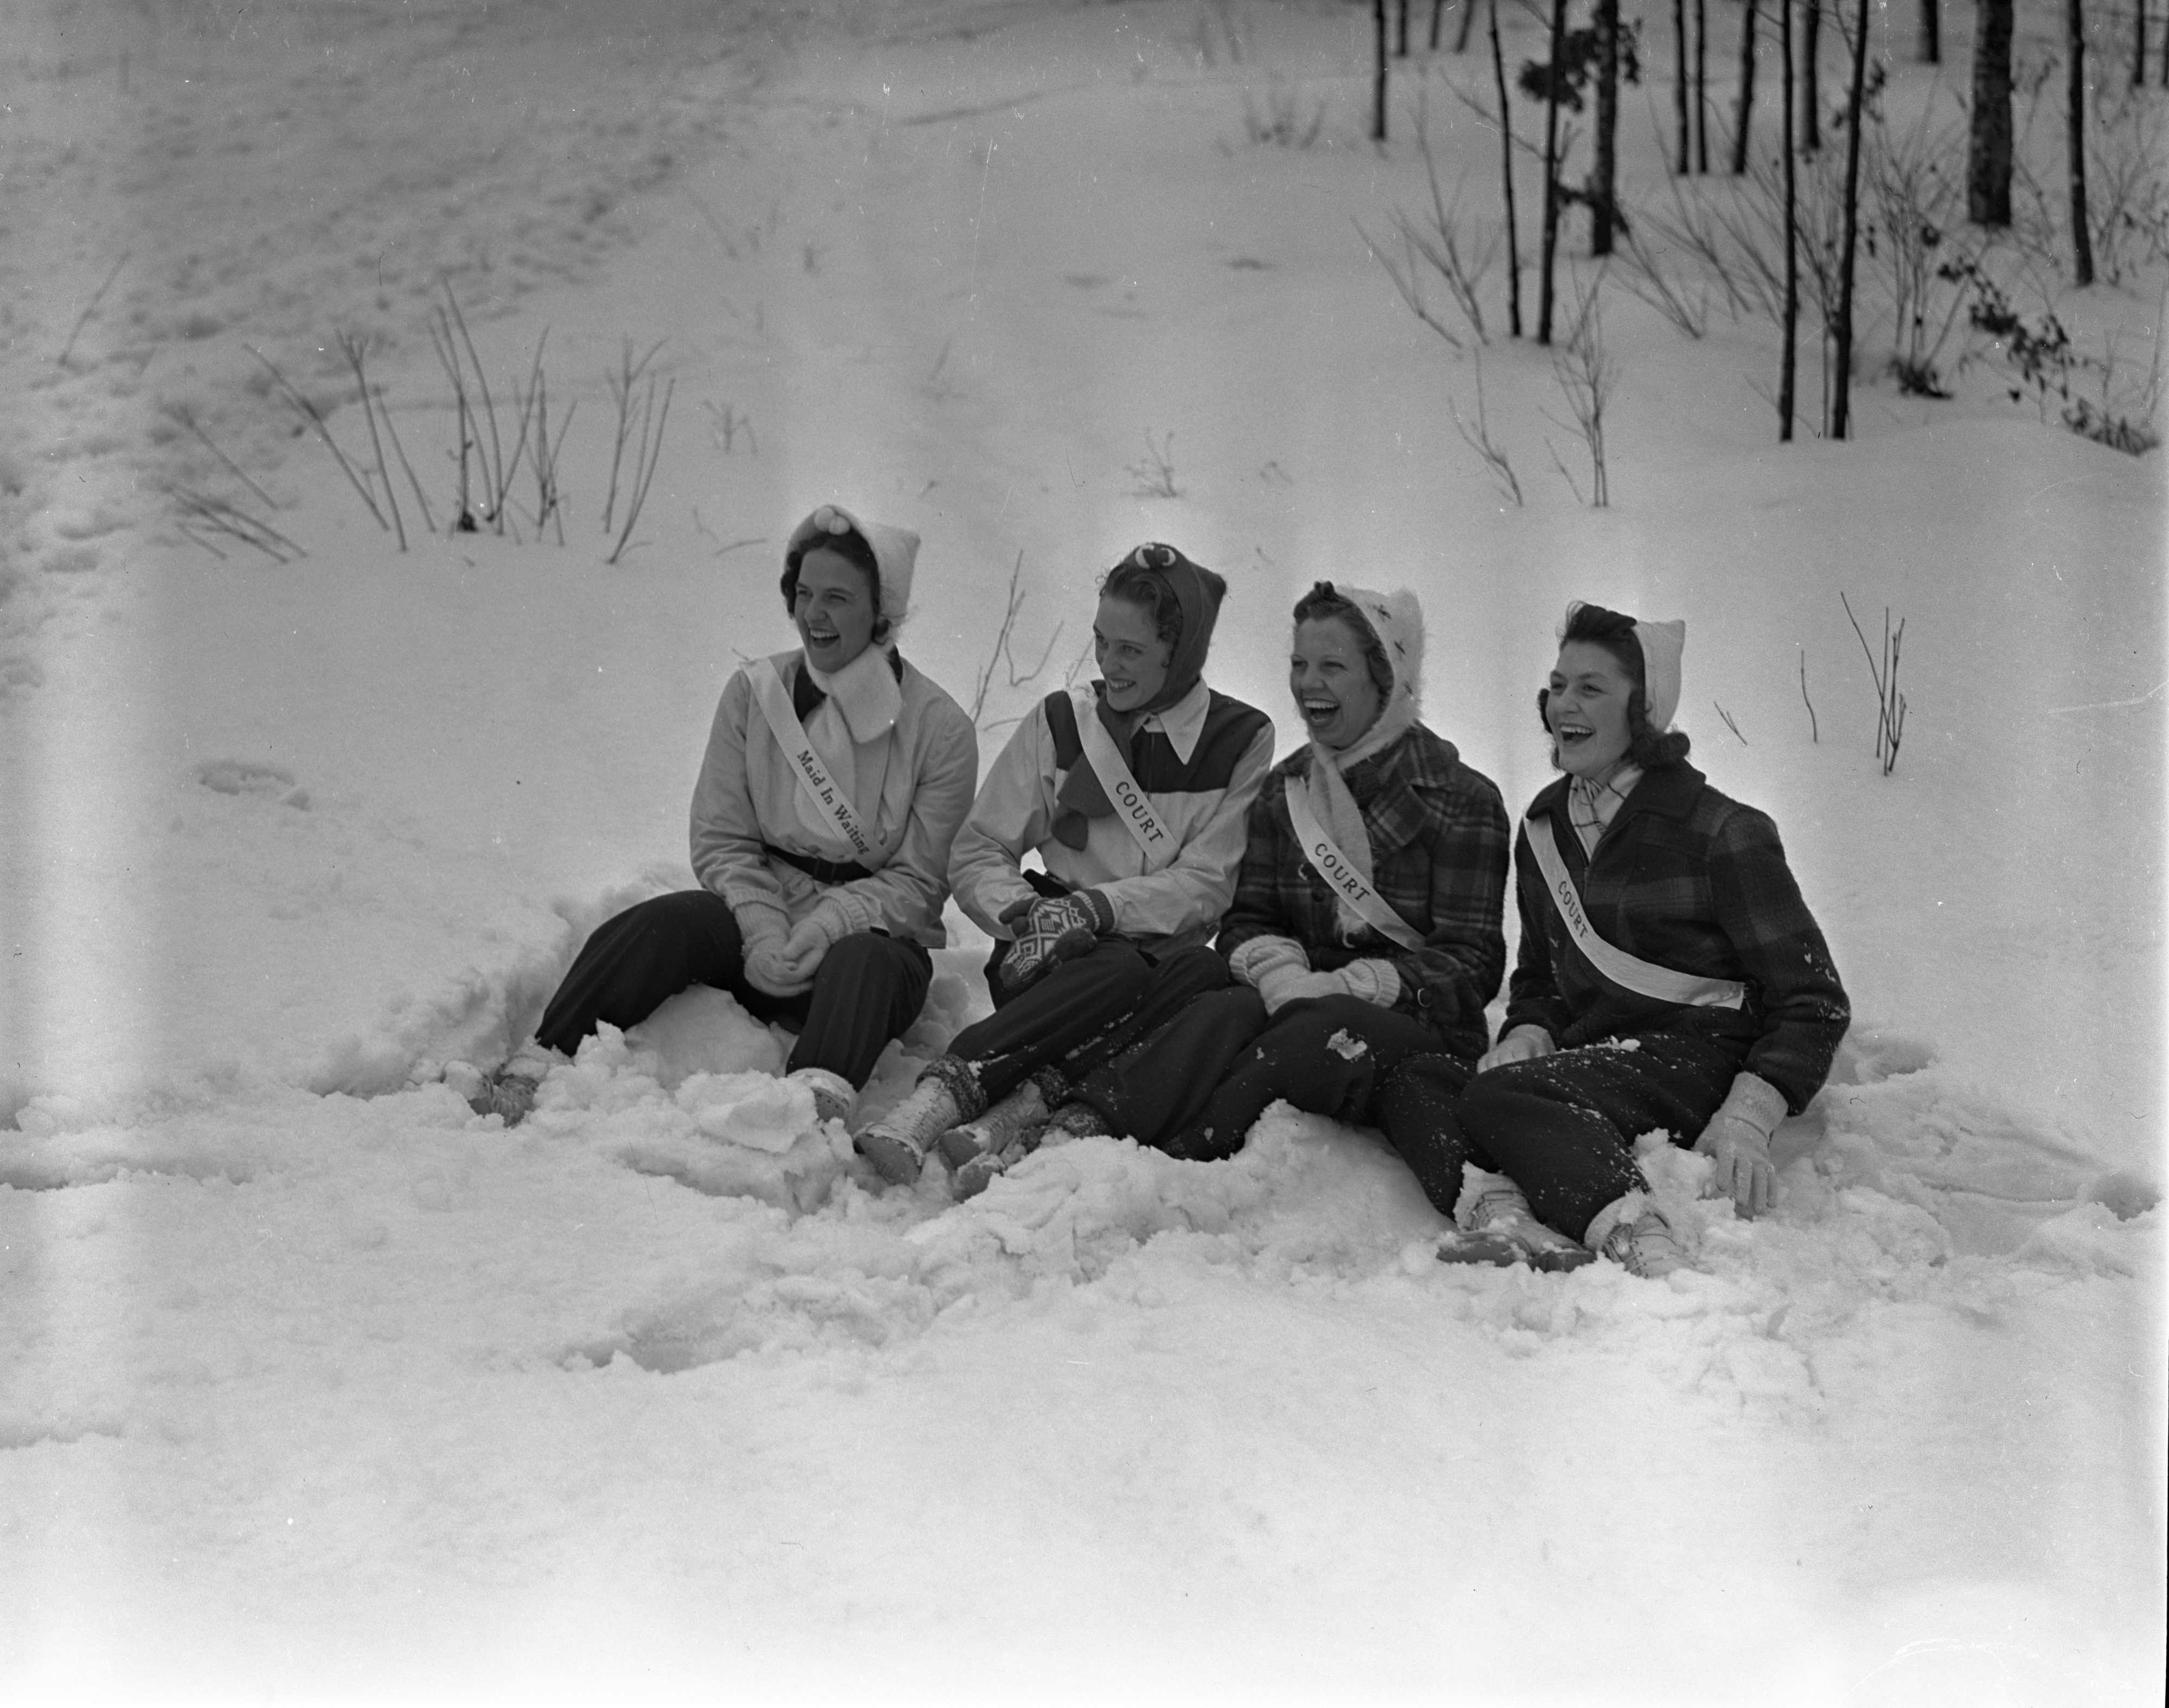 Grayling Snow Queen's Court Sitting In The Snow, January 1940 image